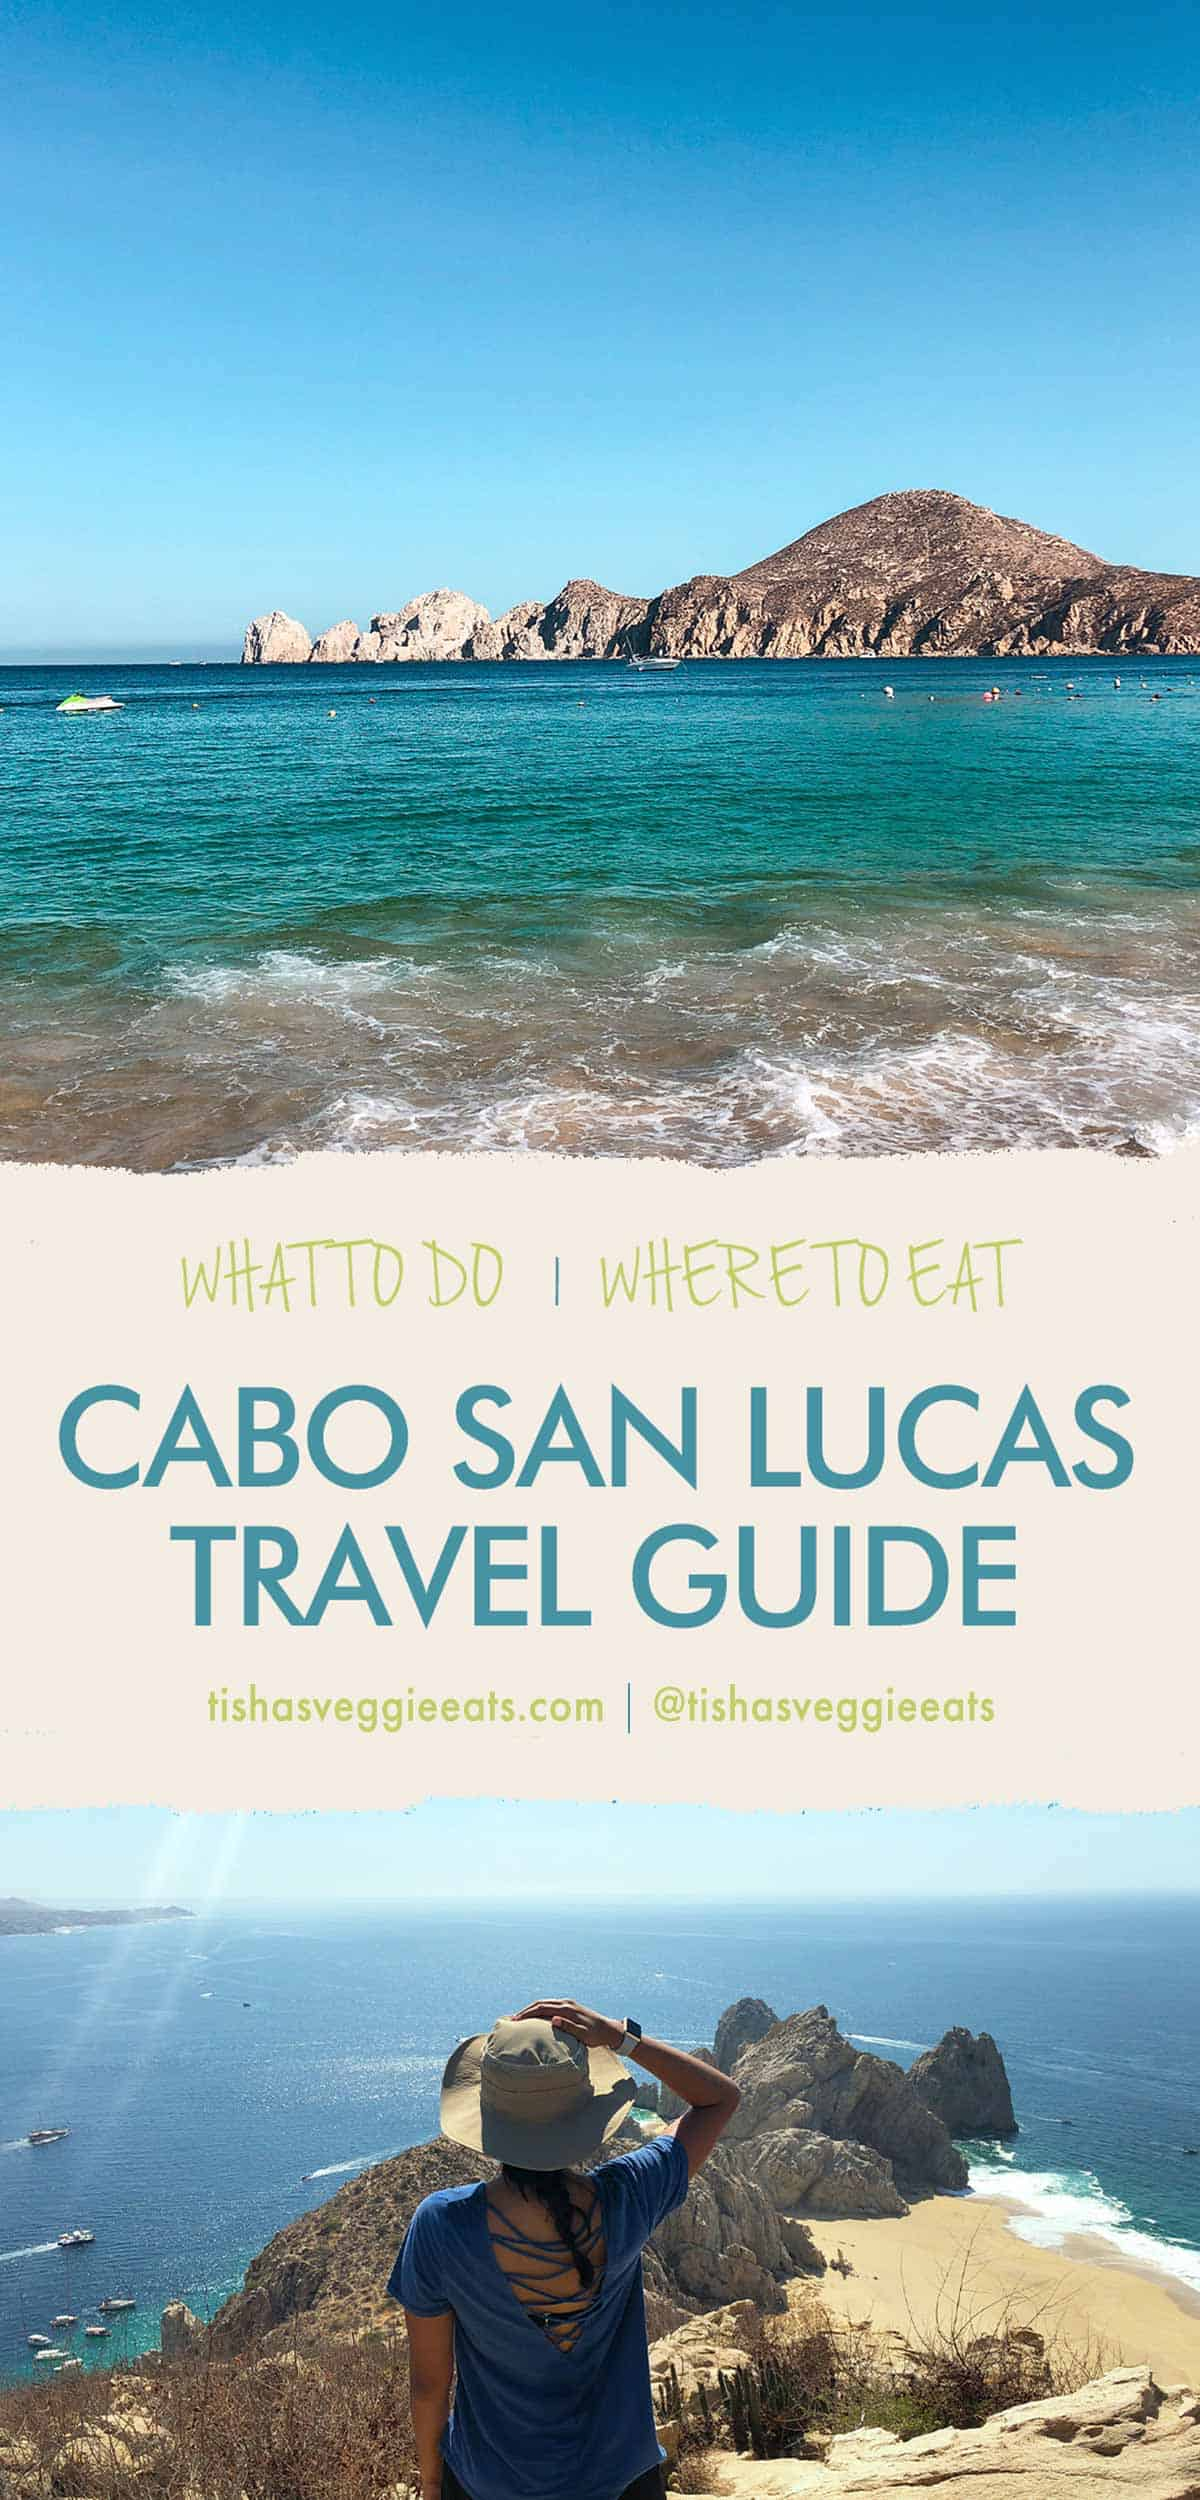 Cabo San Lucas Travel Guide Pinterest Image